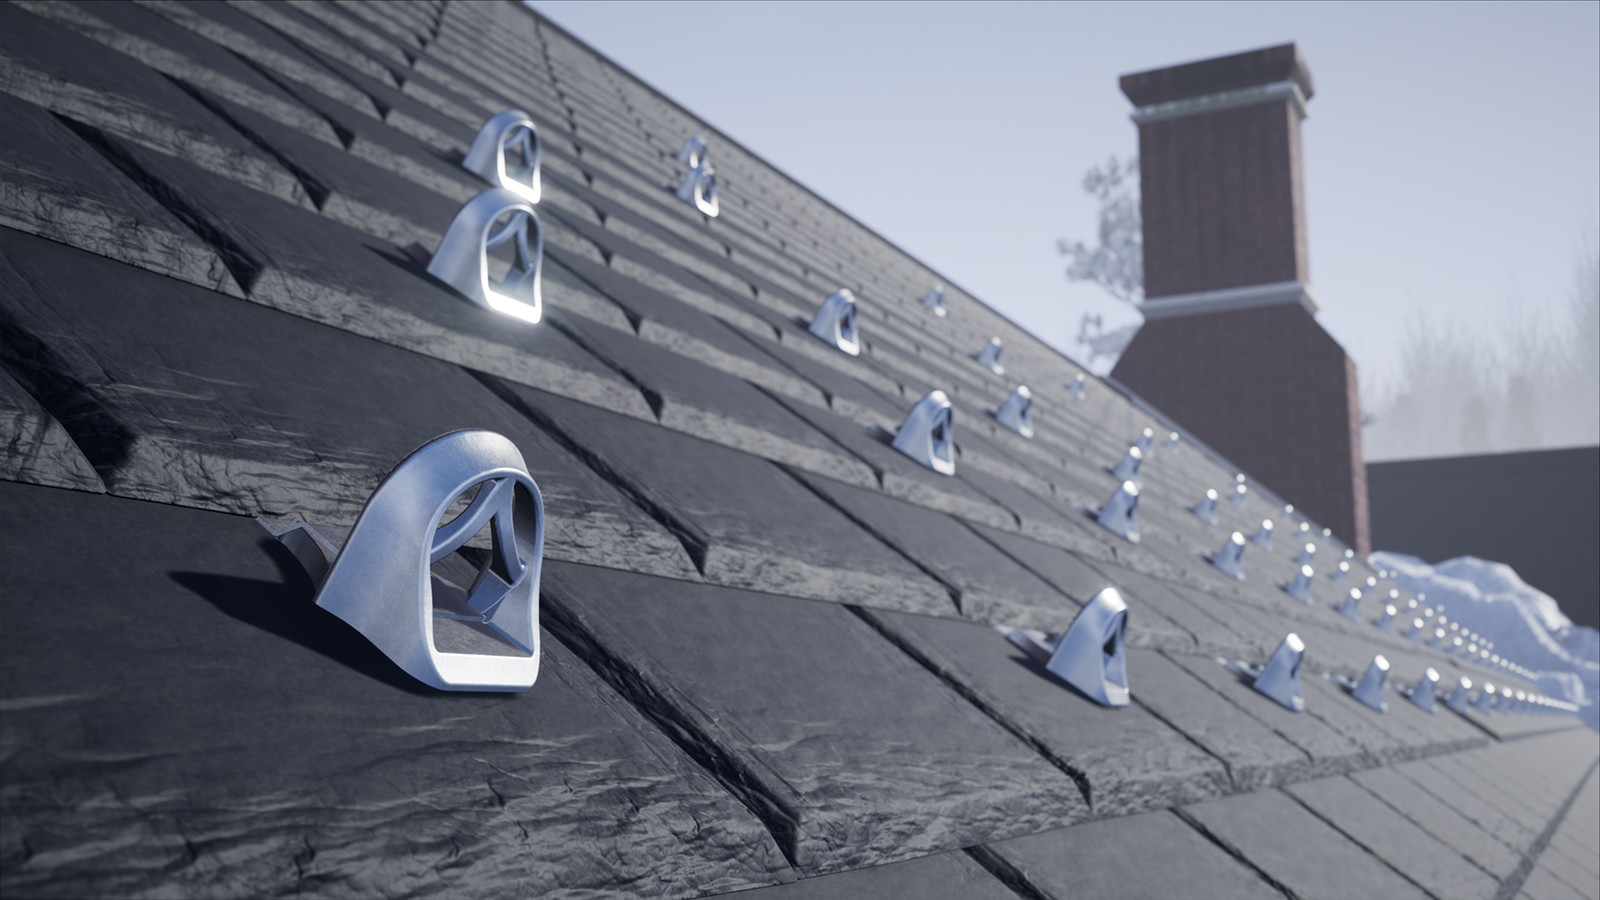 3D rendered example of a full system installed on a roof.